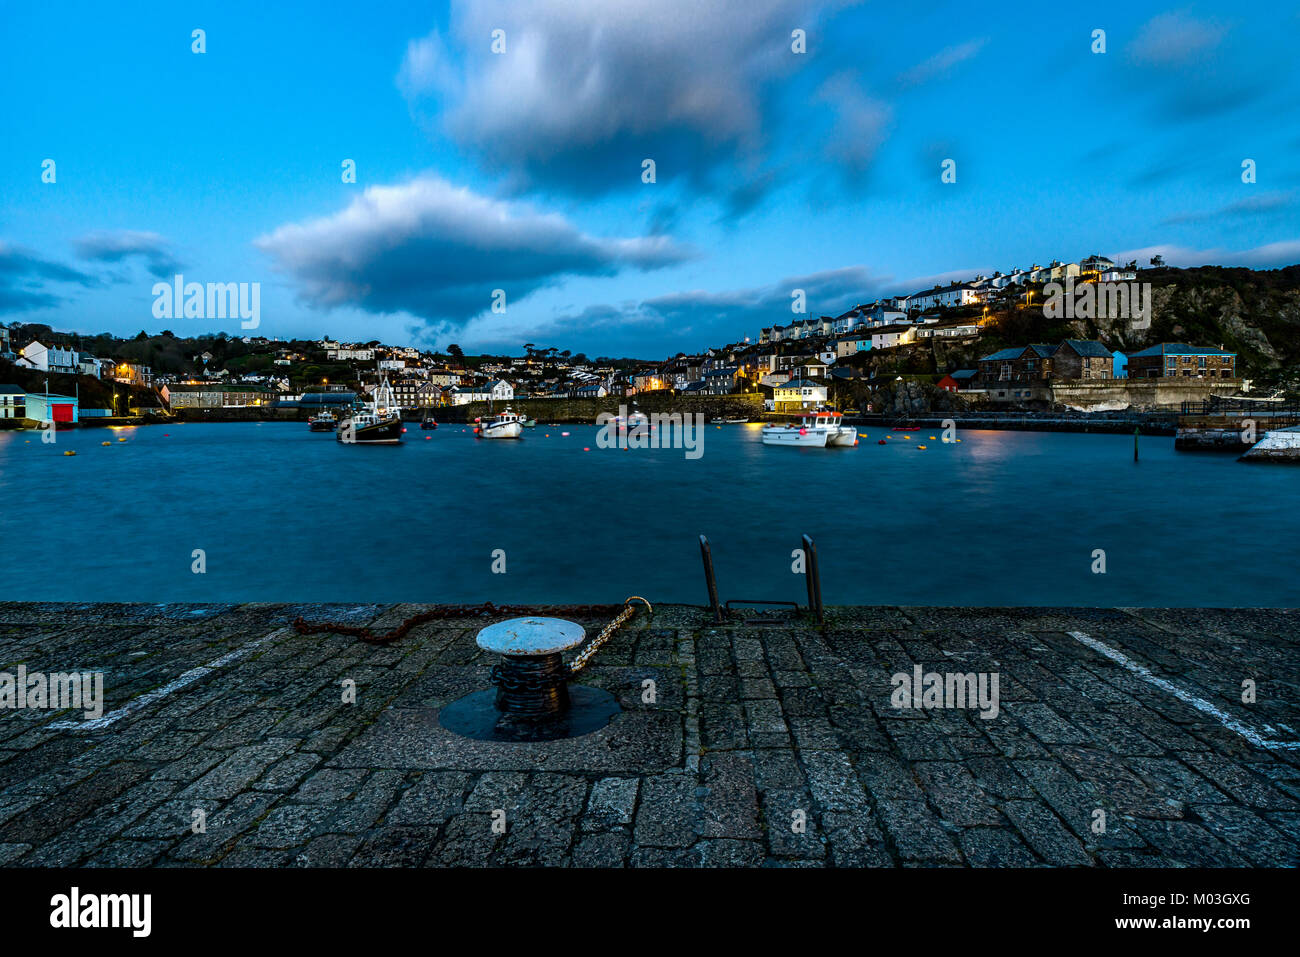 Mevagissey Harbour, St Austell, Cornwall, UK. The morning after Storm Fione the sunrise was a welcome change from - Stock Image